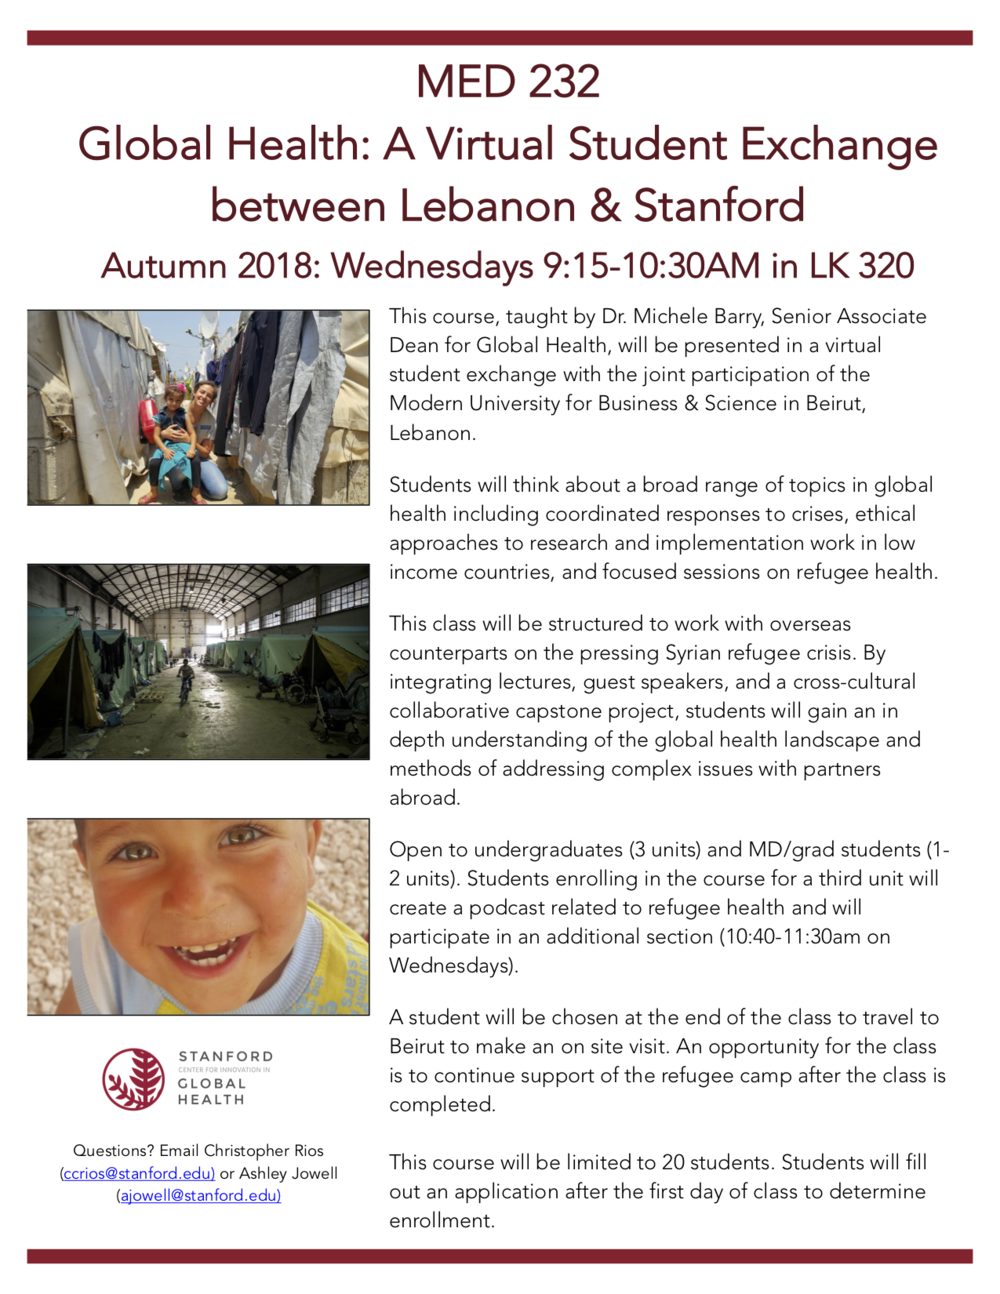 MED232 - Stanford students work in partnership with students in Lebanon (MUBS) and local NGOs to help meet the needs of a refugee community in Beka'a Valley, Lebanon.